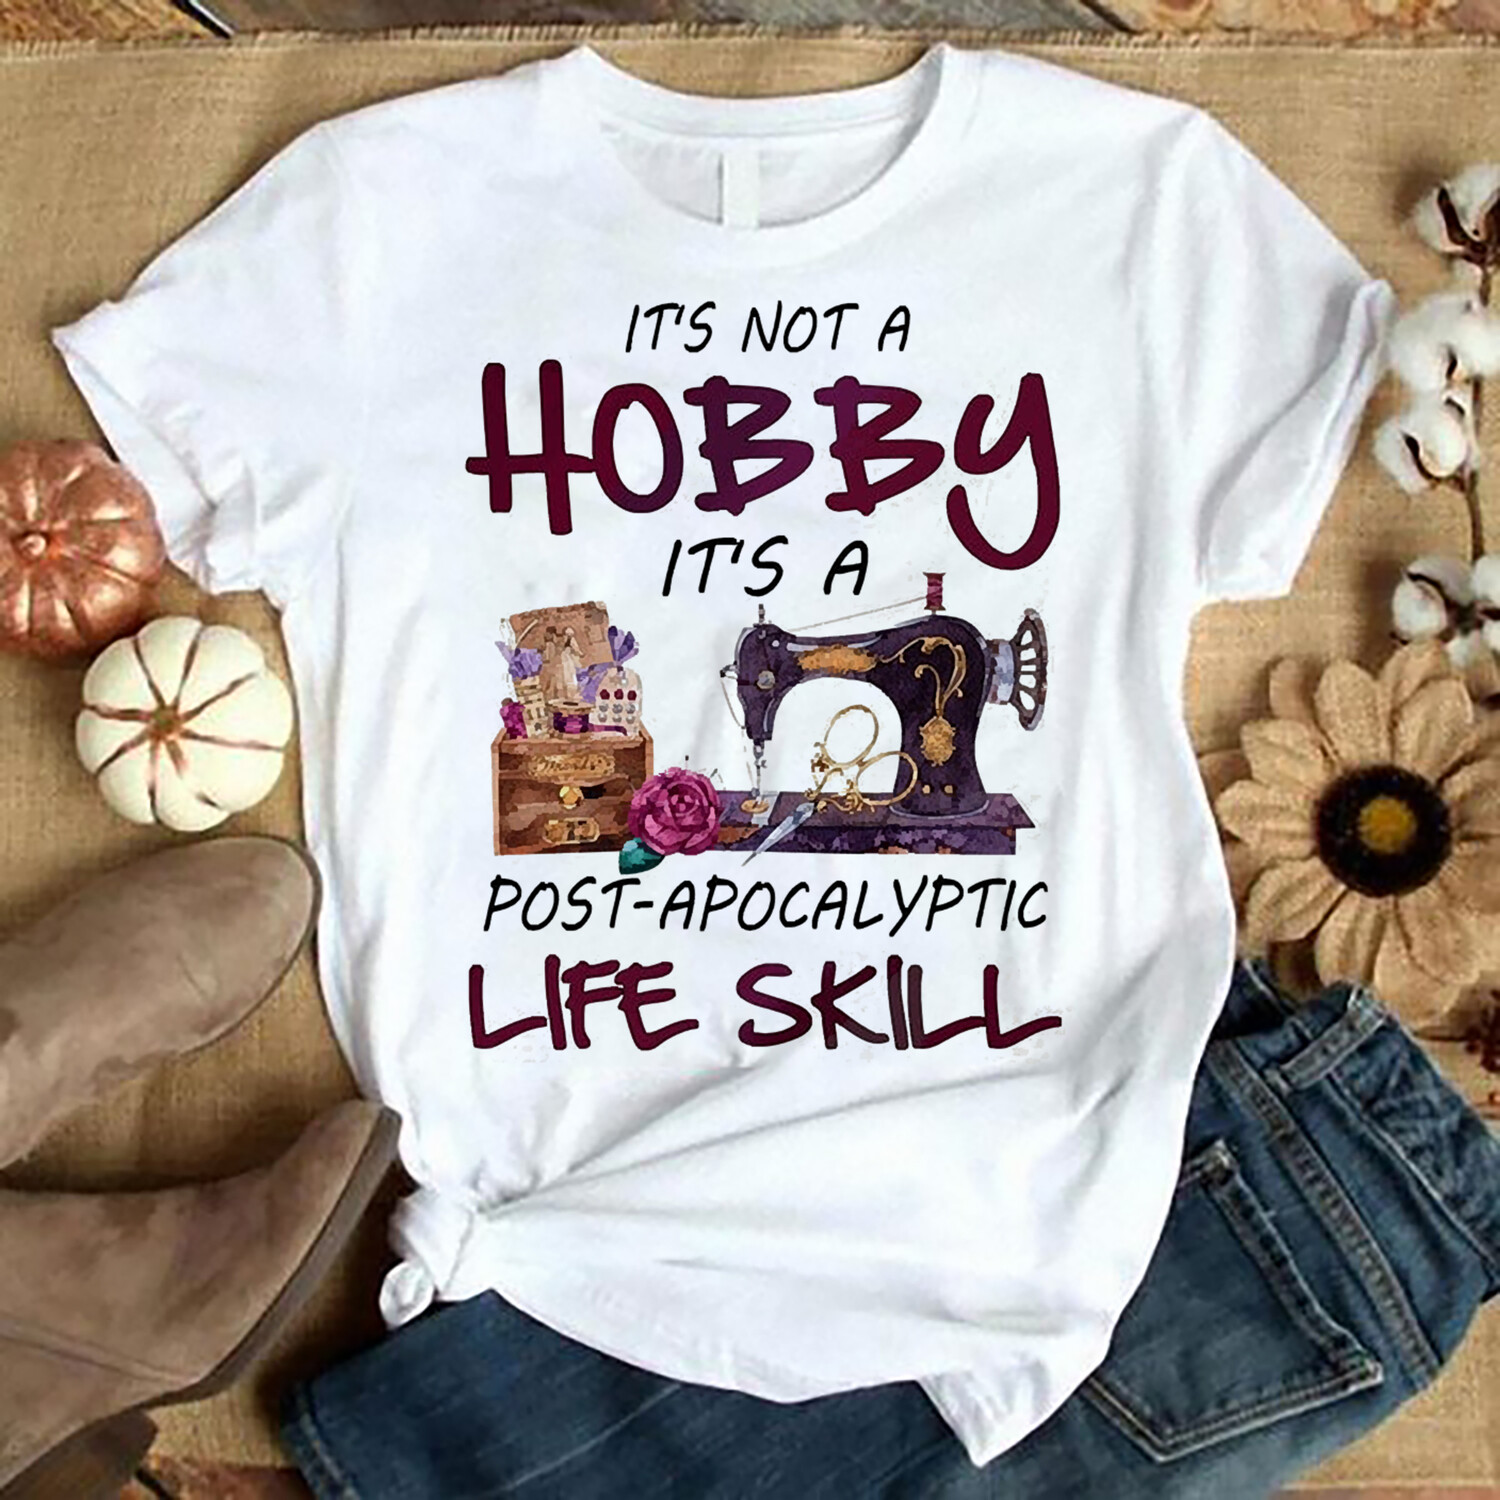 It's Not A Hobby It's A Post Apocalyptic Life Skill T-Shirt gift for Him her